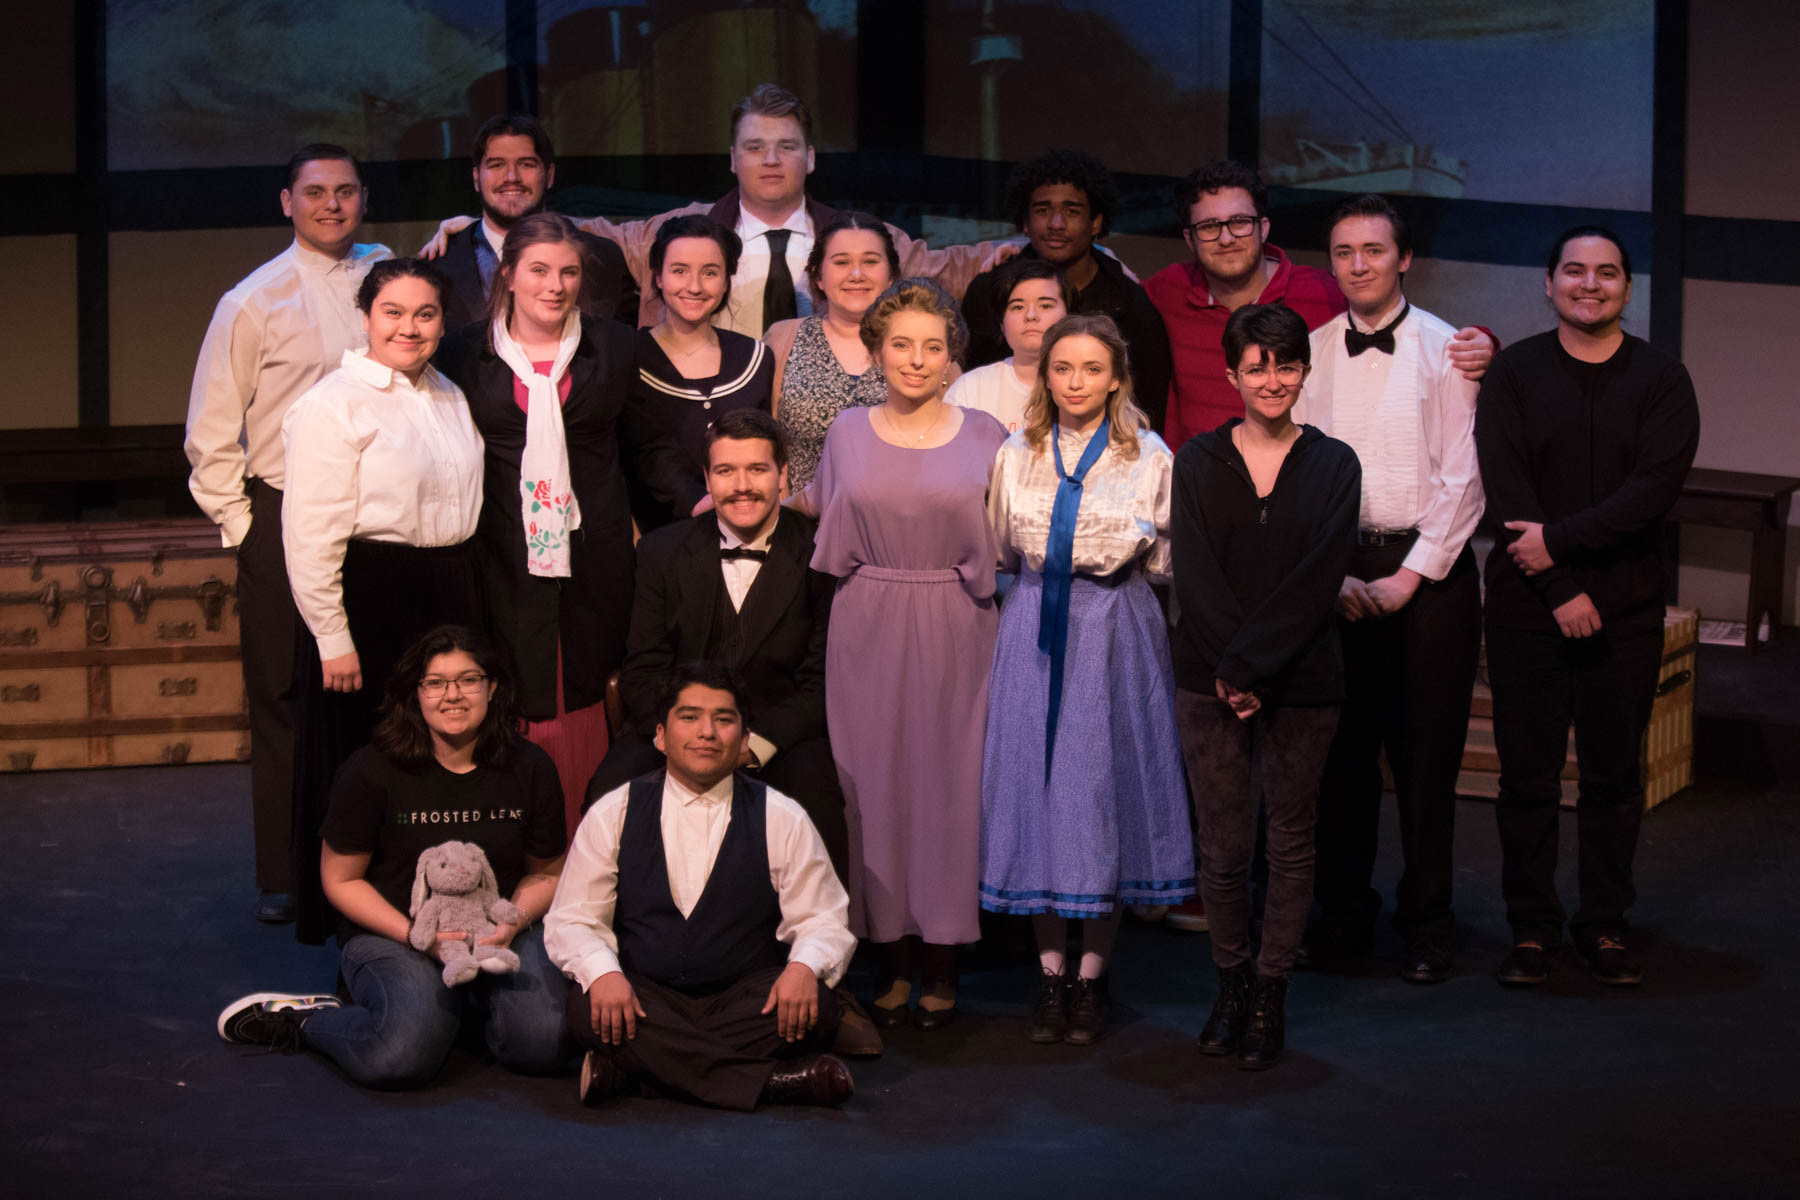 OUTSTANDING DRAMA PERFORMANCE - WCJC Drama Department students take home play festival awards